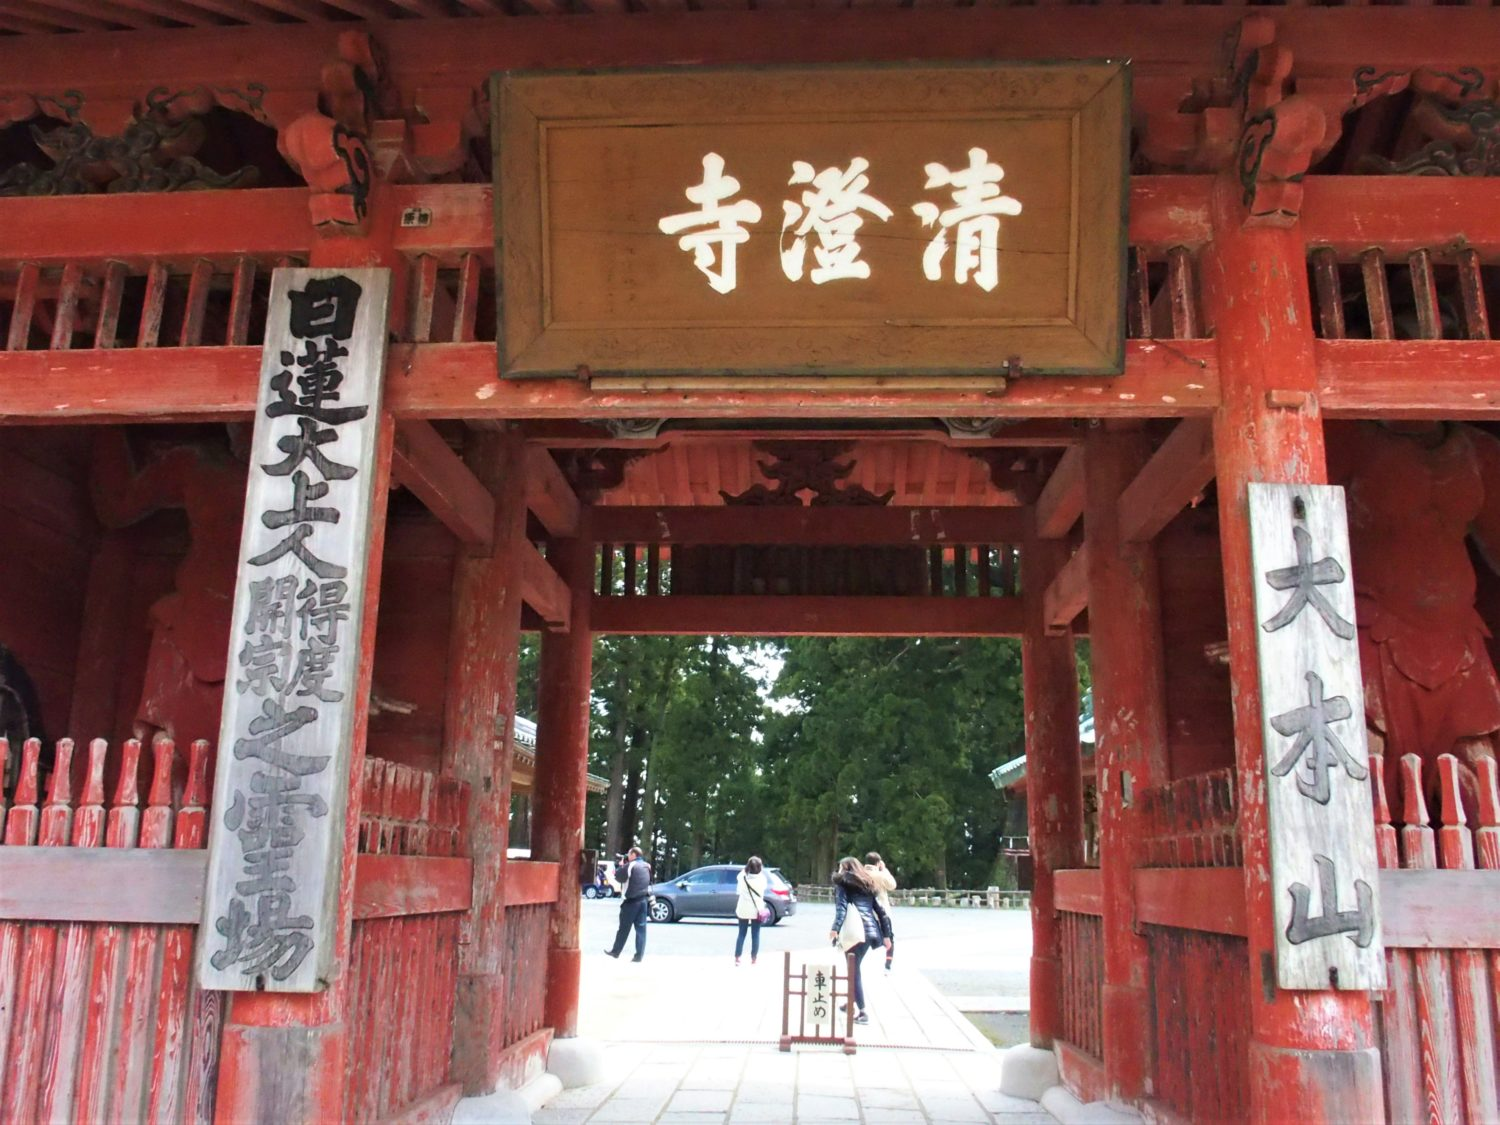 The entrance to Seichoji Temple